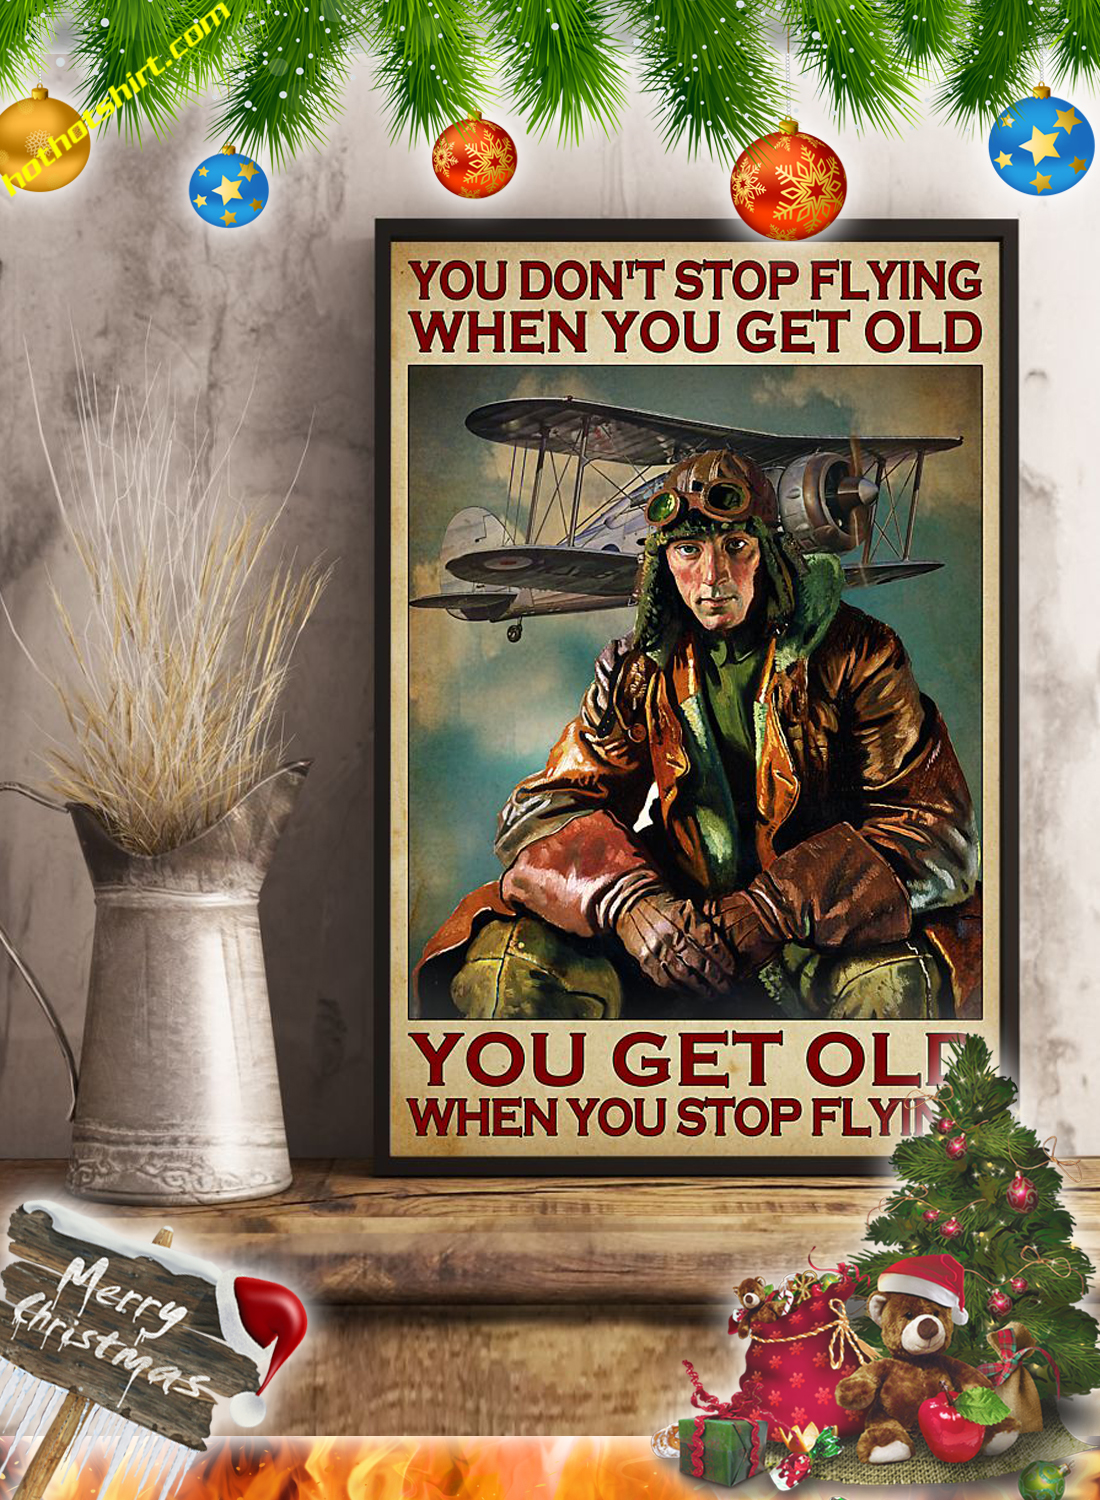 PILOT YOU DON'T STOP FLYING WHEN YOU GET OLD POSTER 2